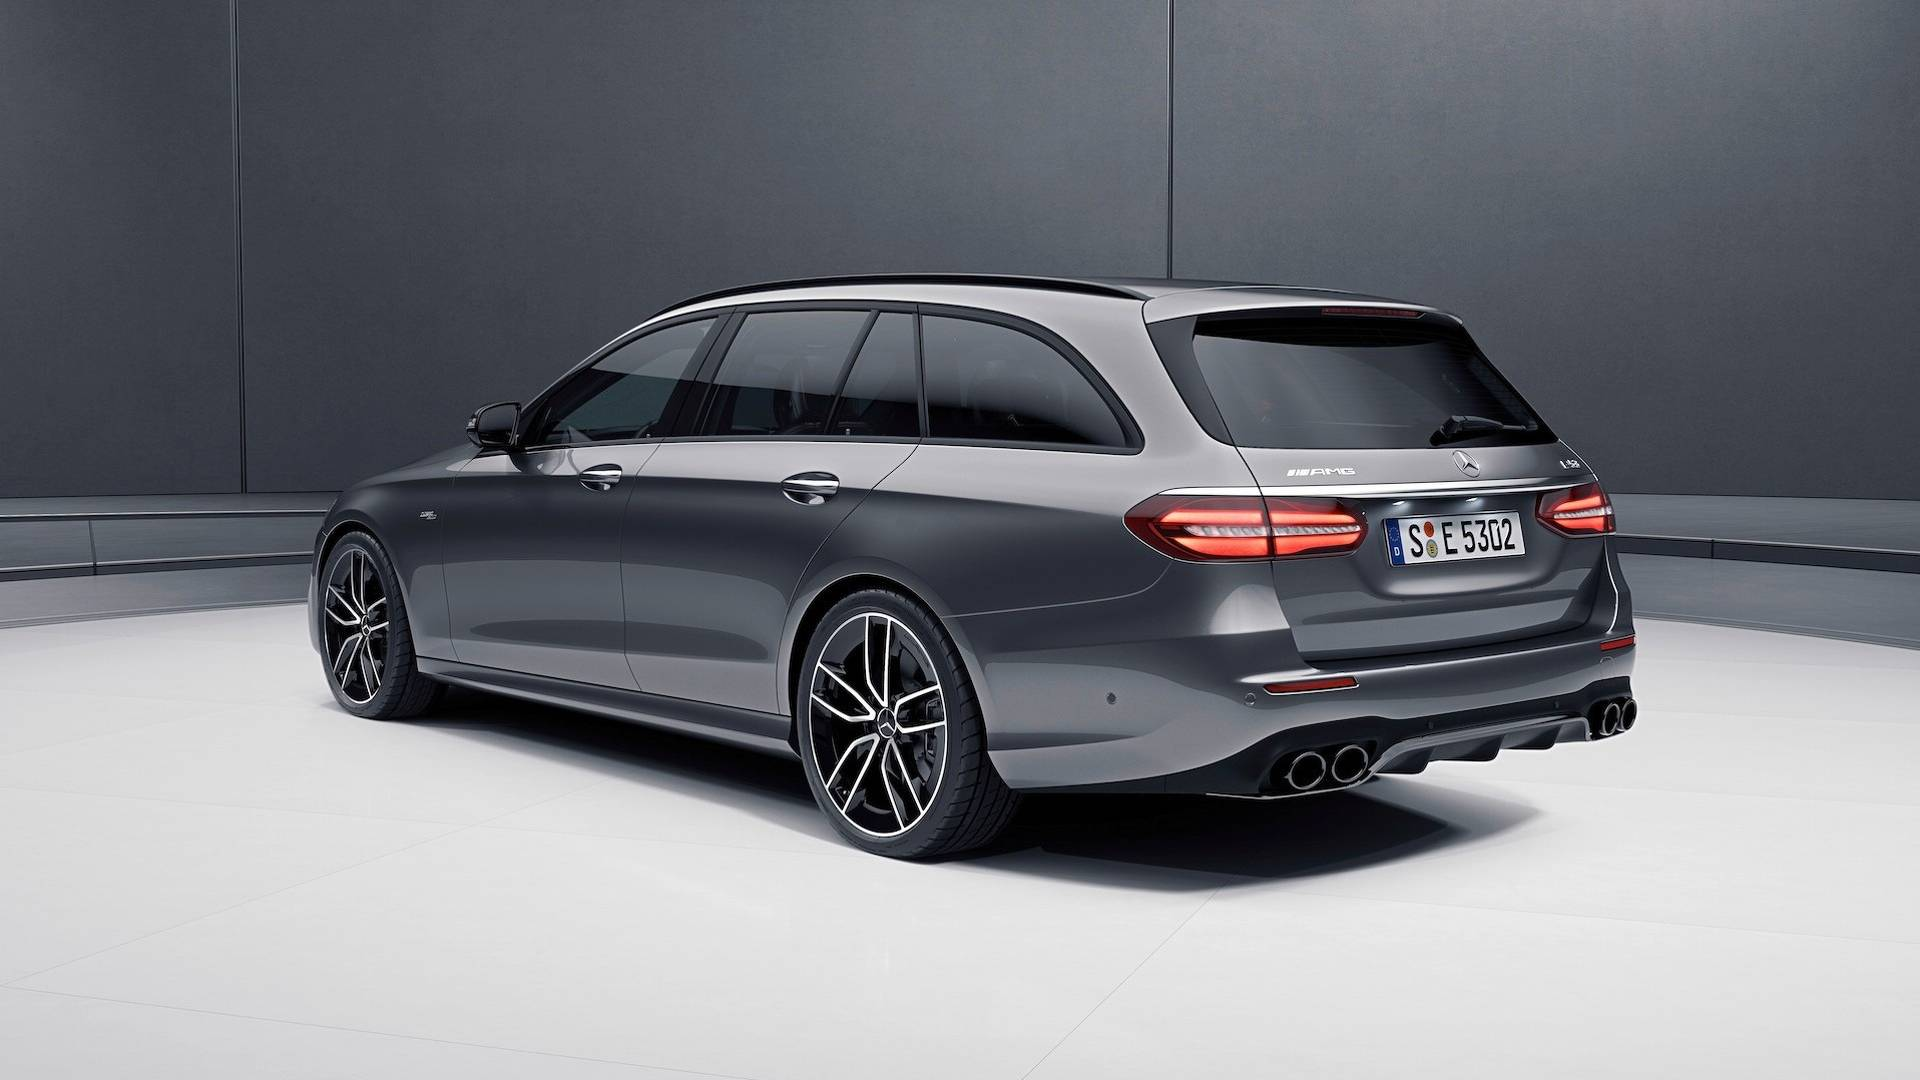 VWVortex.com - 2019 Mercedes-AMG E53 sedan and wagon unveiled with AMG's 429-hp turbocharged ...